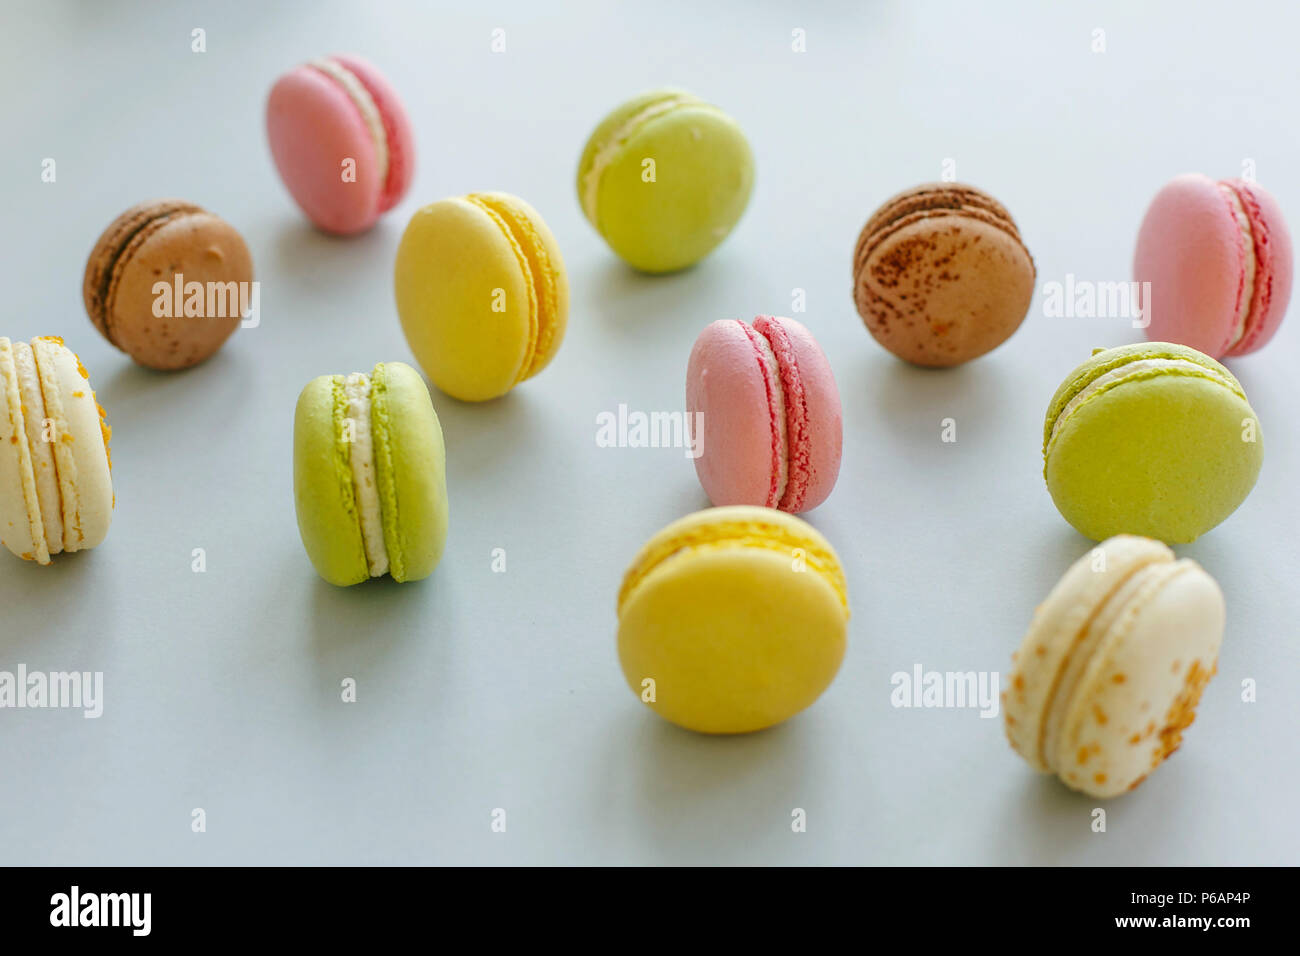 colorful macarons on trendy pastel gray paper. tasty pink, yellow, green and brown macaroons. candy bar for party. instagram food photography. yummy b - Stock Image